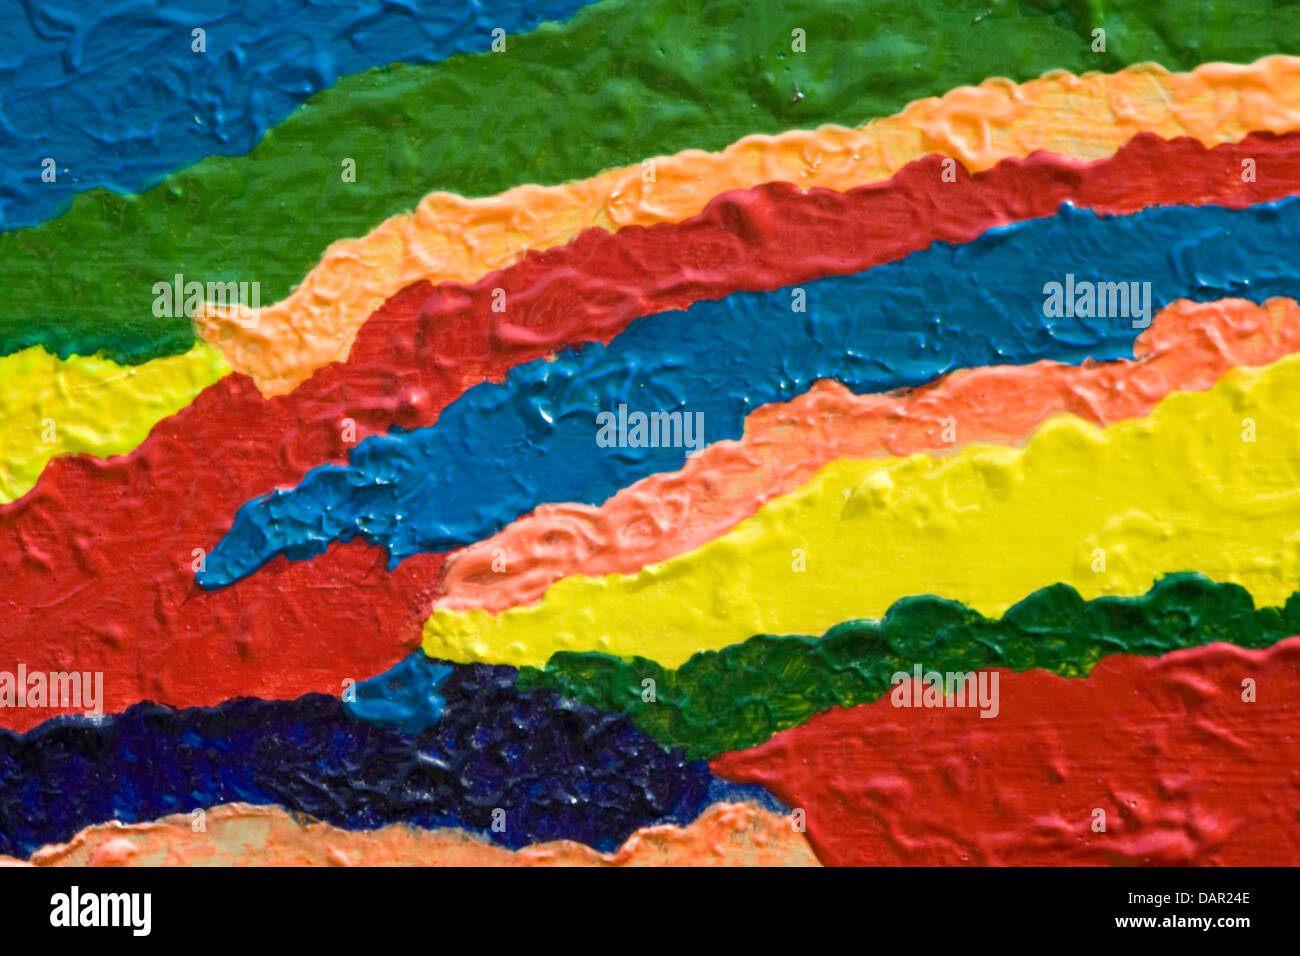 Travaux d'art abstrait aux couleurs vives Photo Stock